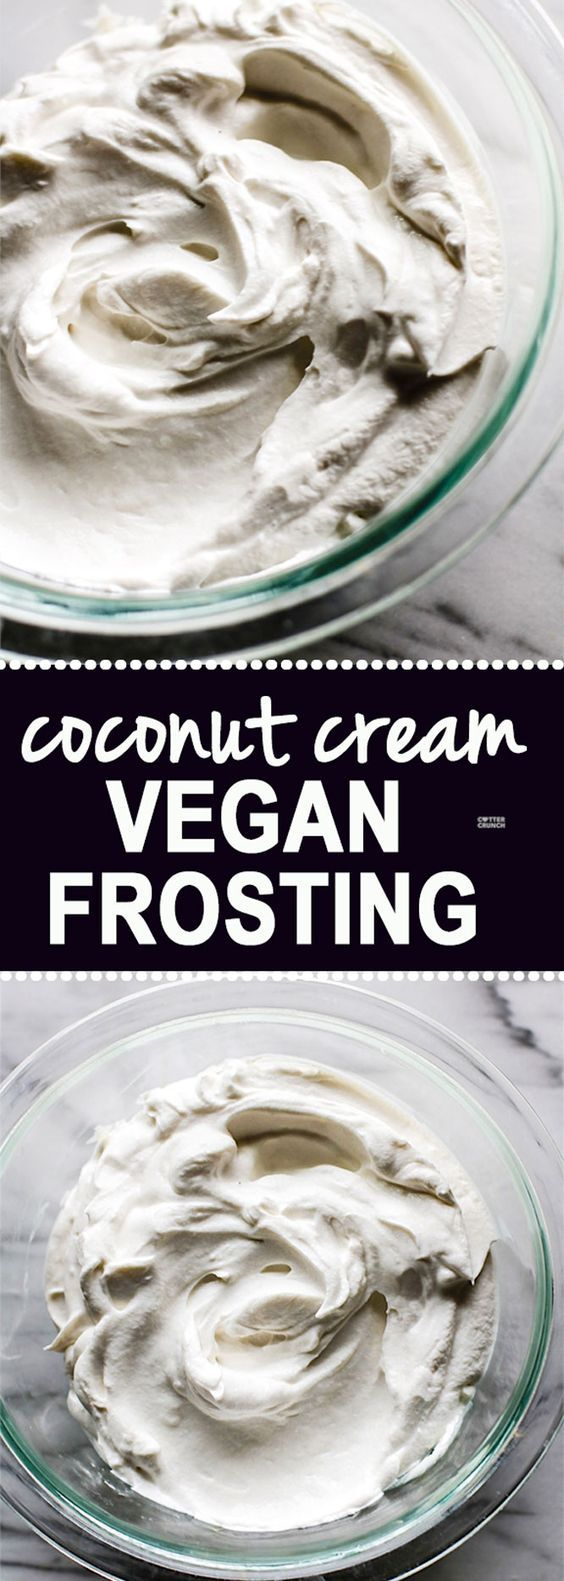 How to Make Gluten Free Fluffy Coconut Cream Vegan Frosting! It literally takes 2 ingredients and just one method. This coconut cream vegan frosting is super delicious, healthy, paleo friendly, and did I mention EASY?! Yes! SIMPLE to make @cottercrunch: